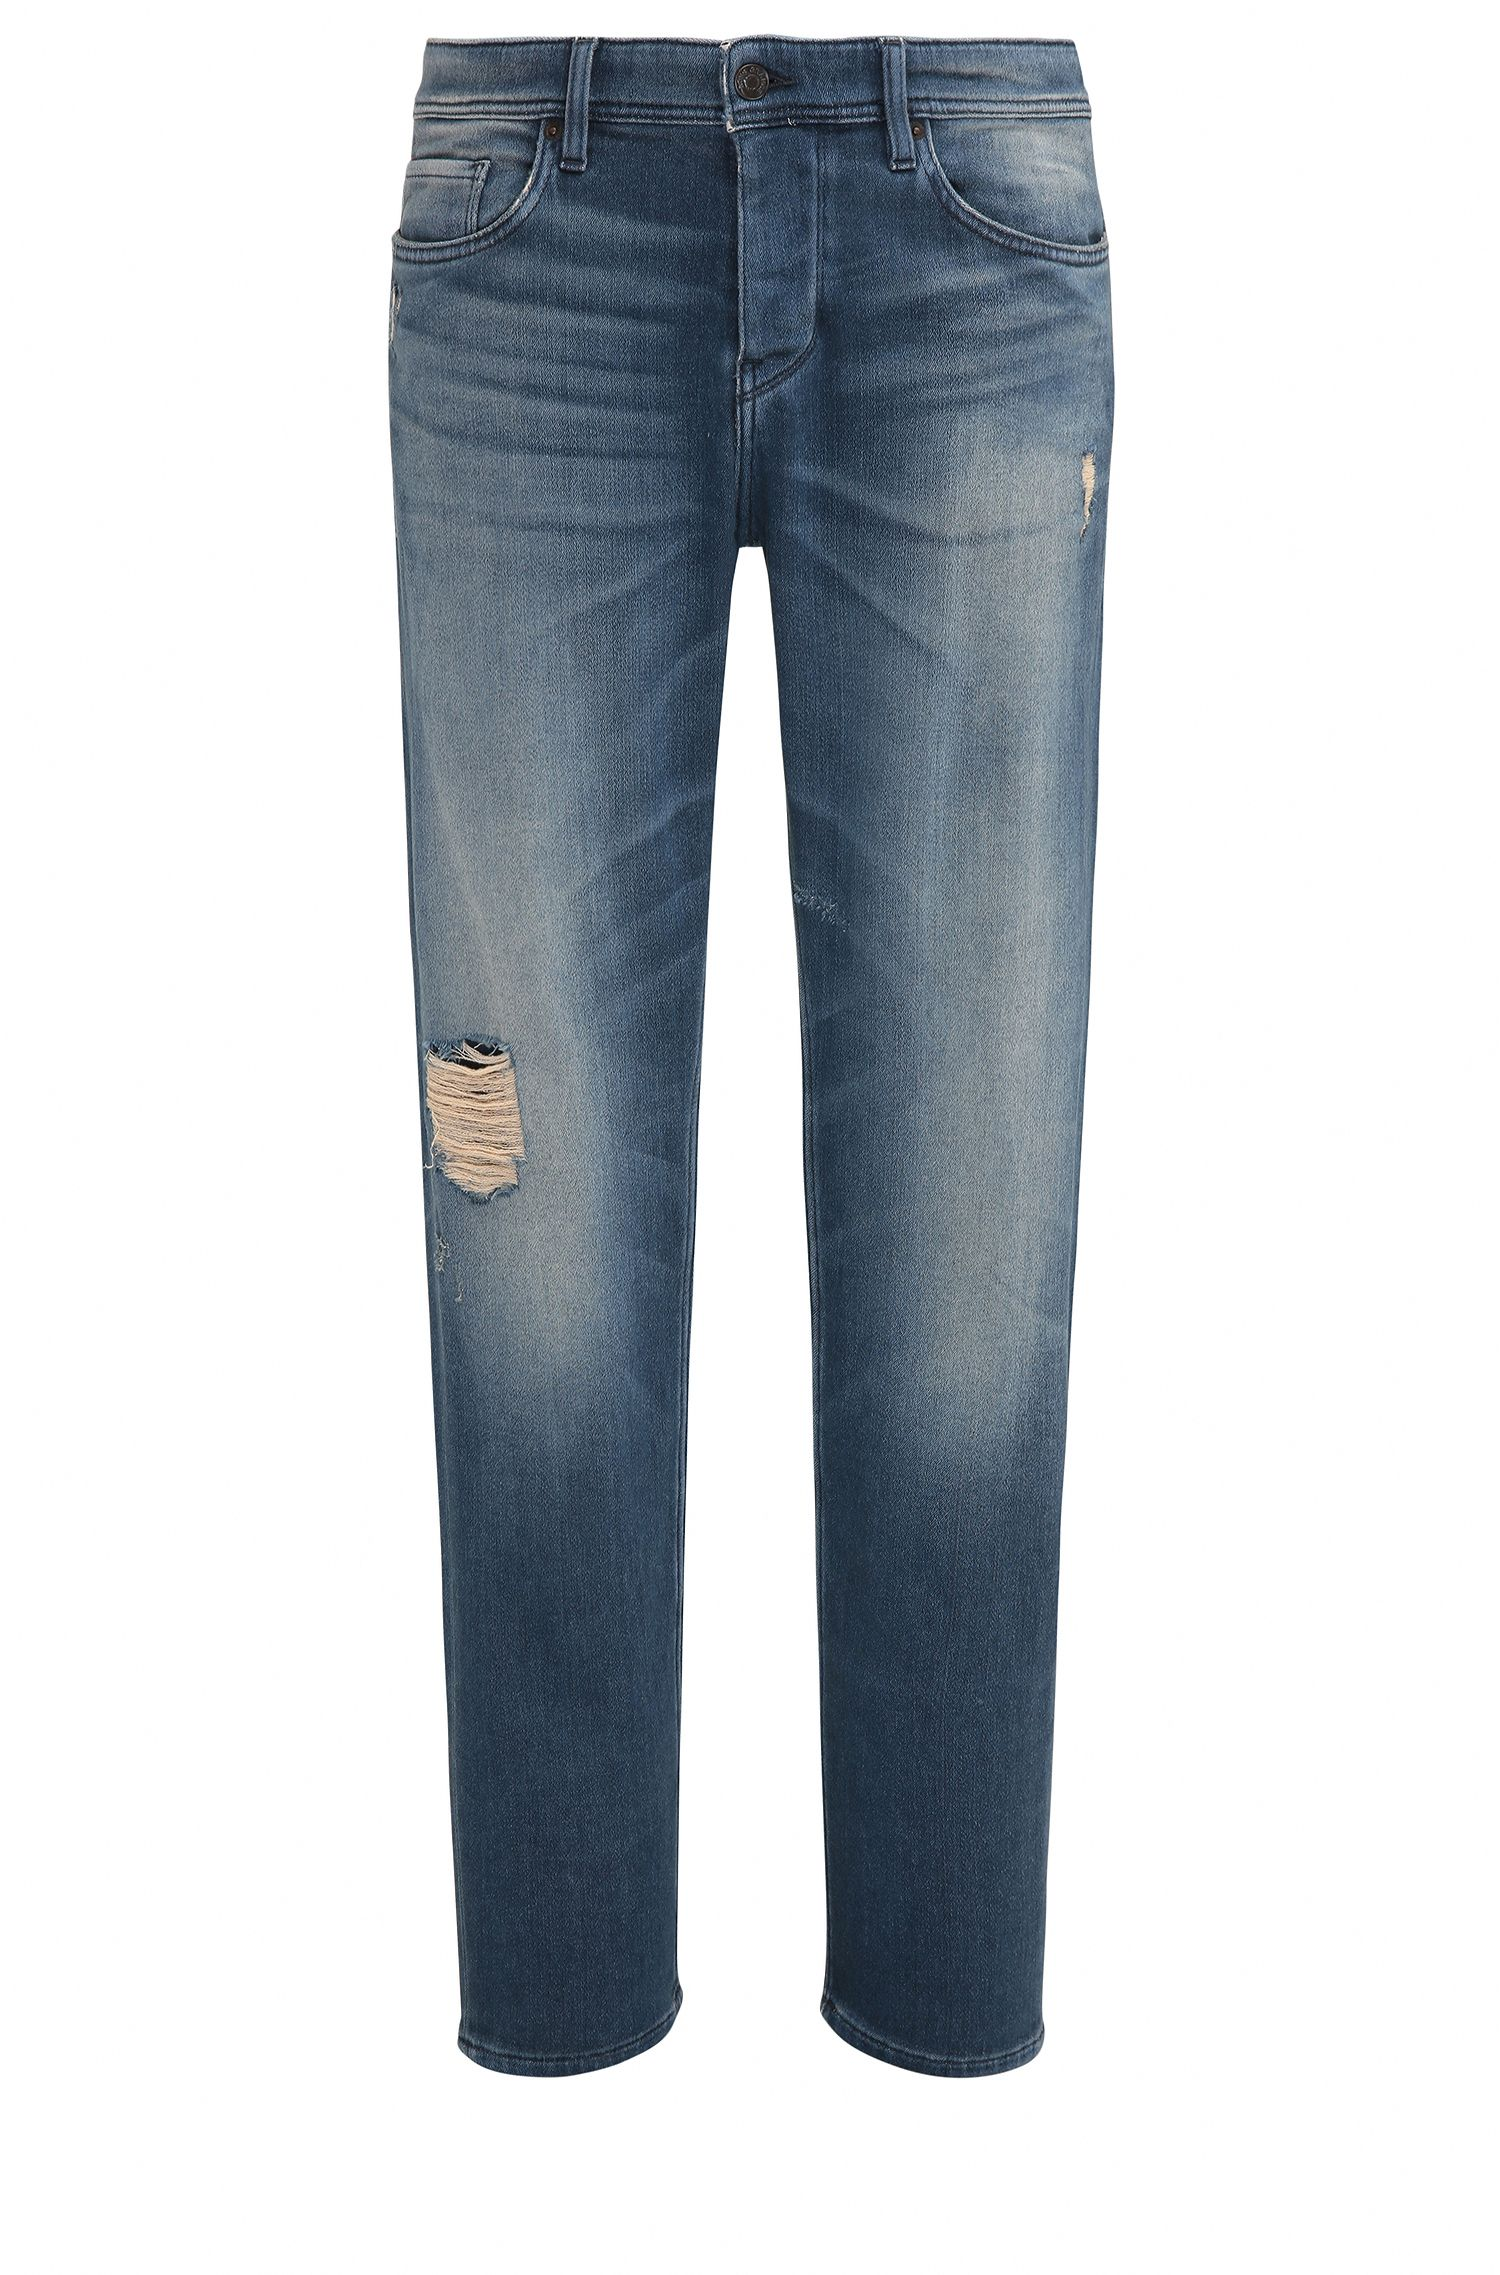 Distressed Stretch Cotton Jean, Tapered Fit | Orange90